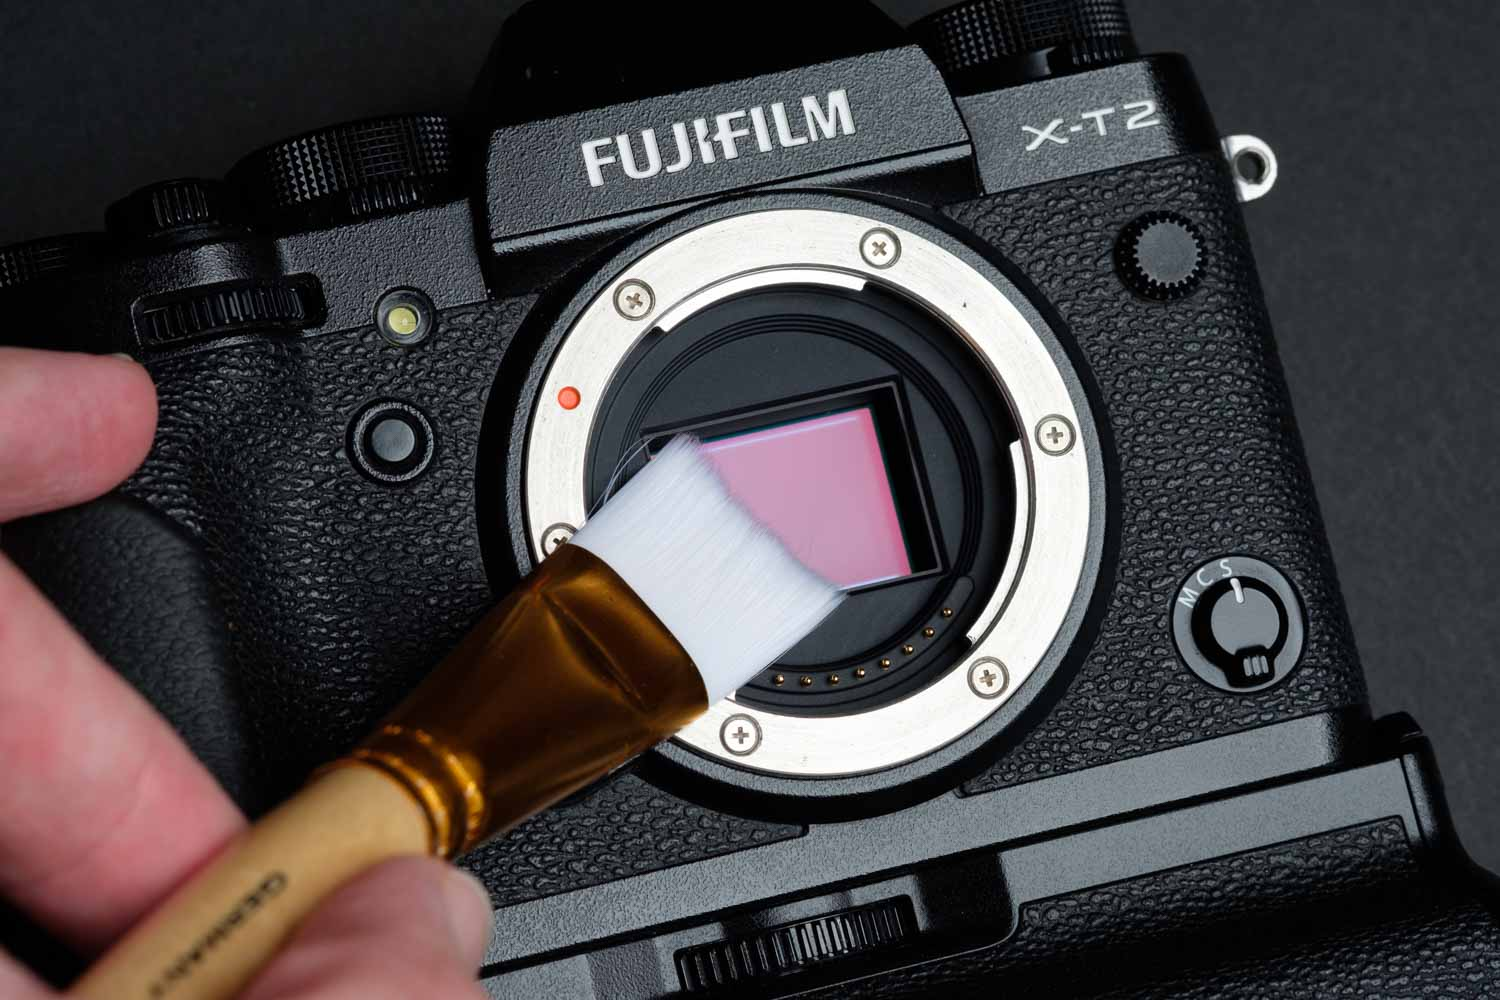 Cleaning the Fuji X-T2 Sensor With a Sensor Brush